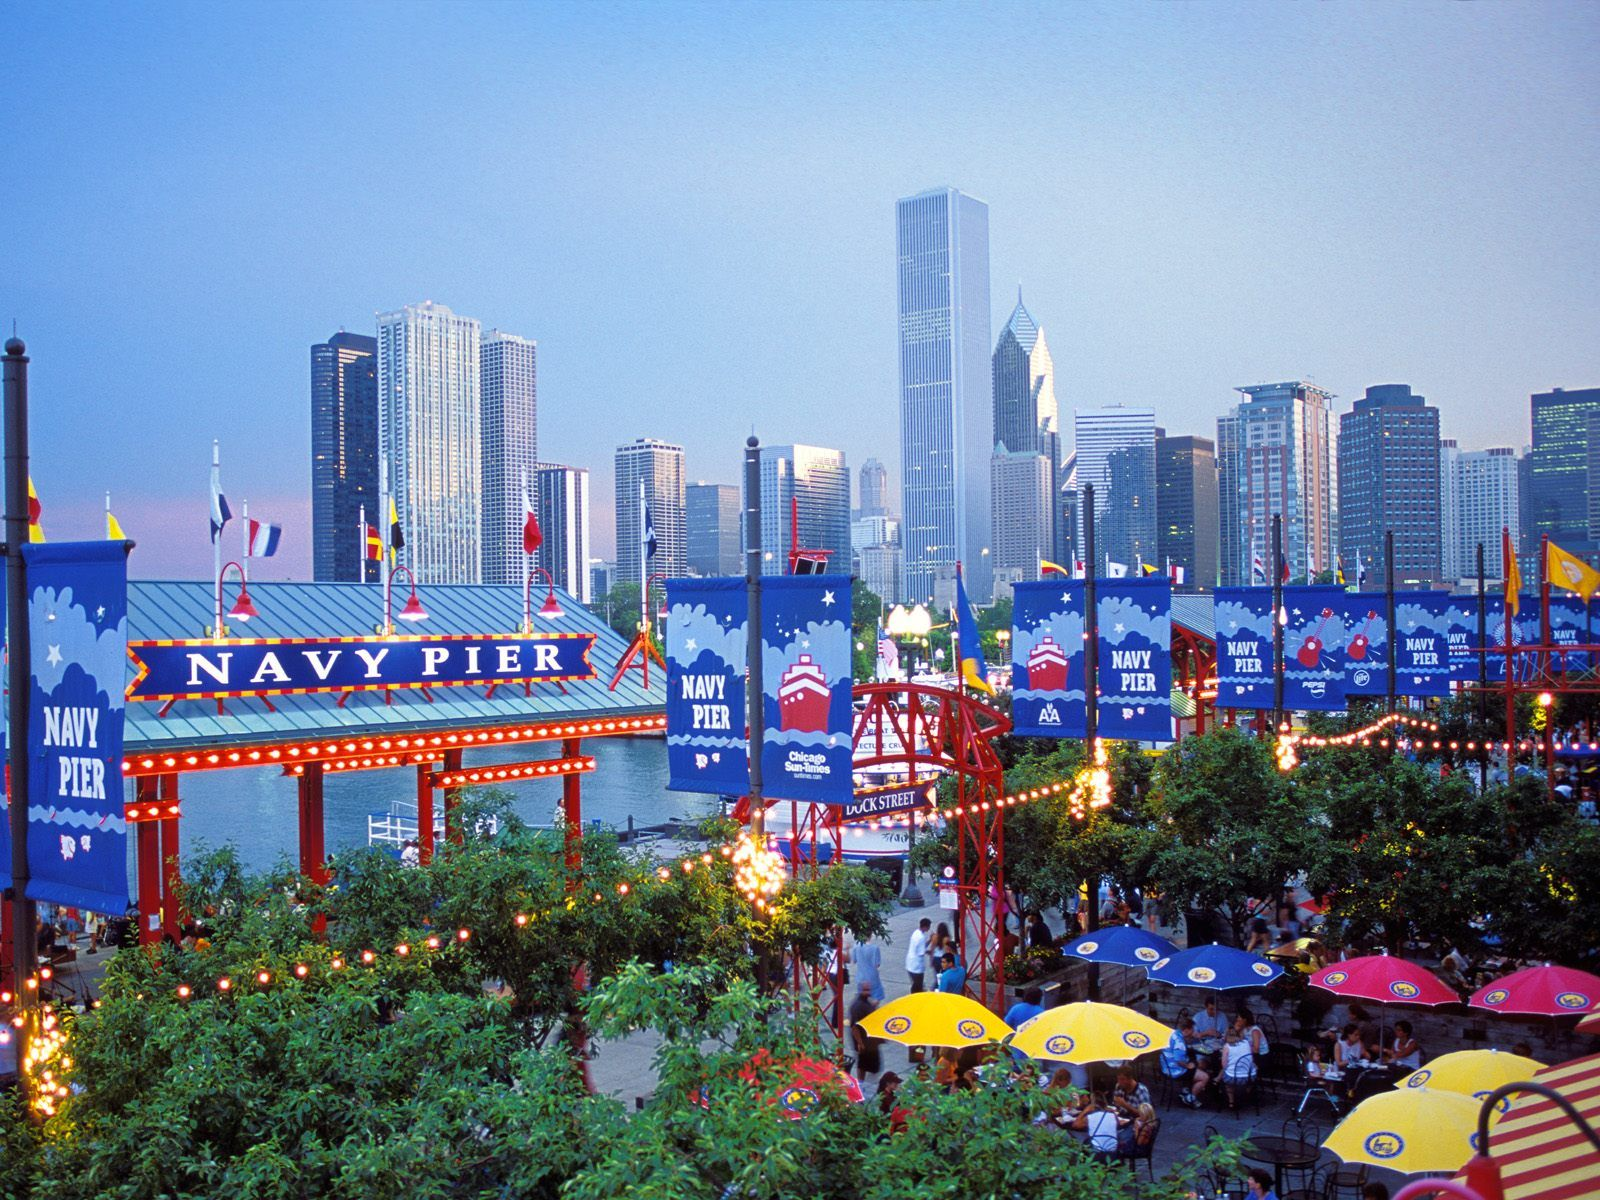 High Resolution Buildings City Desktop Wallpaper Of Navy Pier Chicago Illinois ID